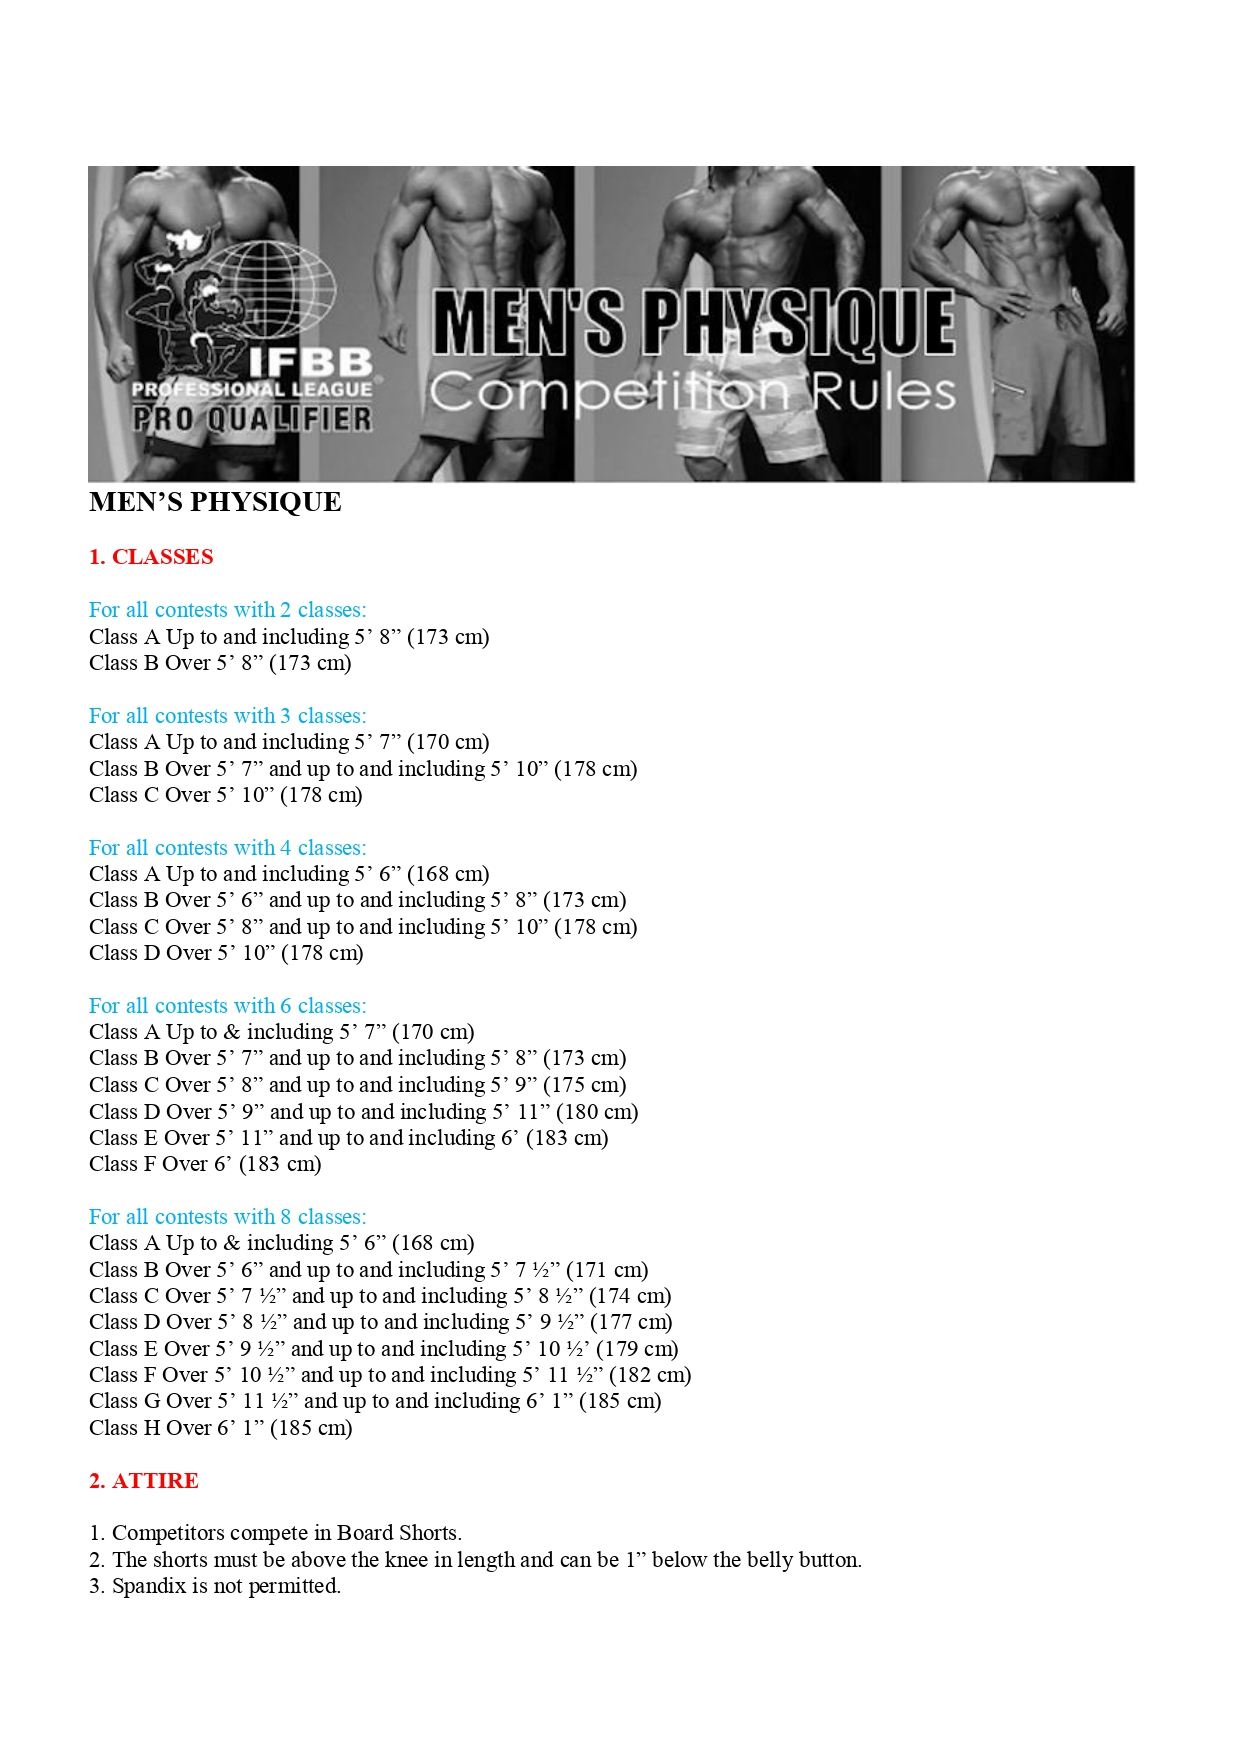 IFBB-rules_page-0002